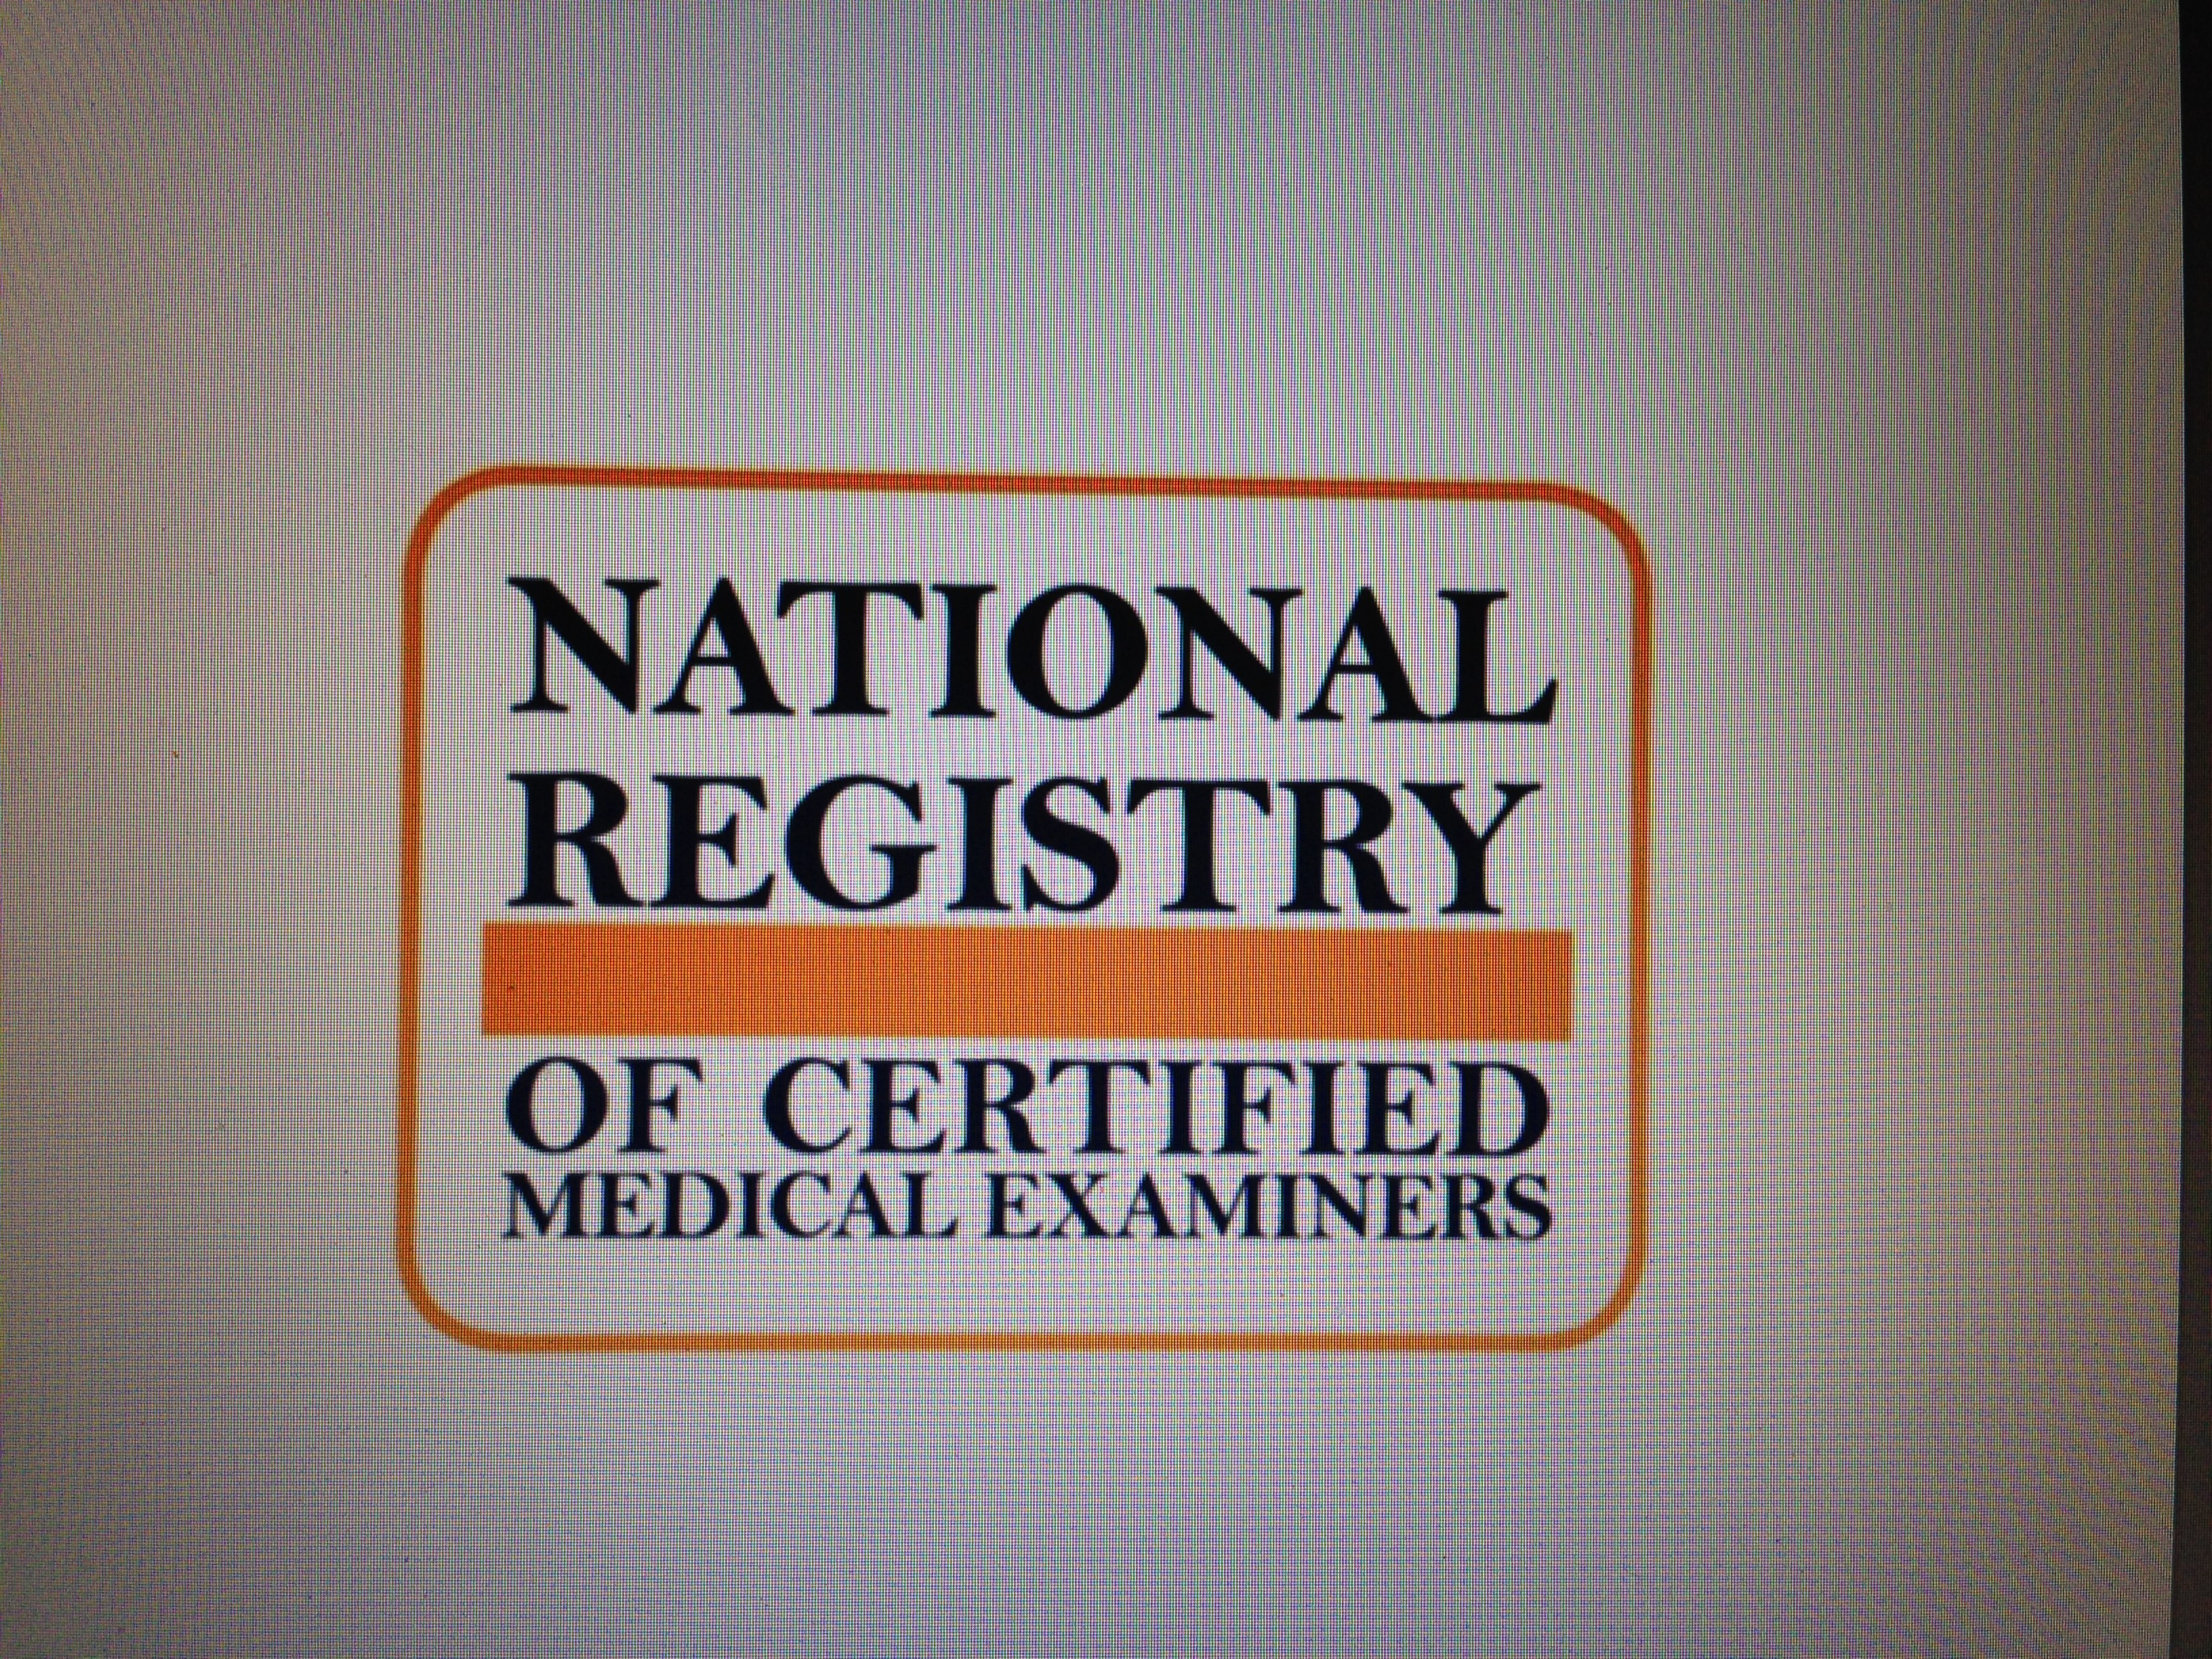 The Mother's Day Bus Crash:  Why a National Registry of Certified Medical Examiners was formed.